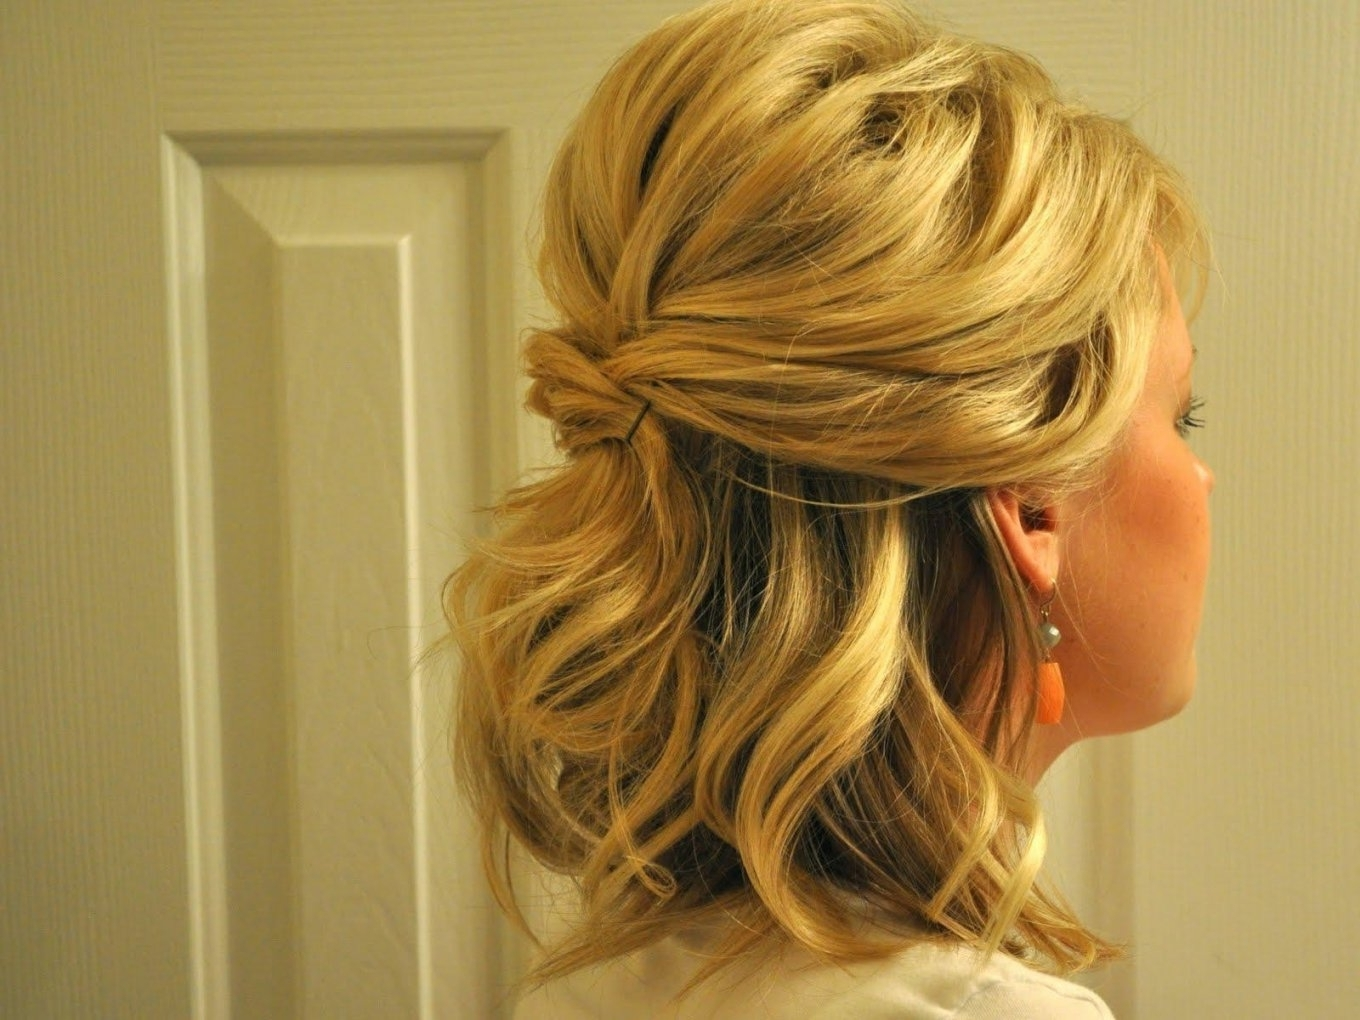 Wedding Hairstyles For Bridesmaids With Medium Length Hair (View 14 of 15)